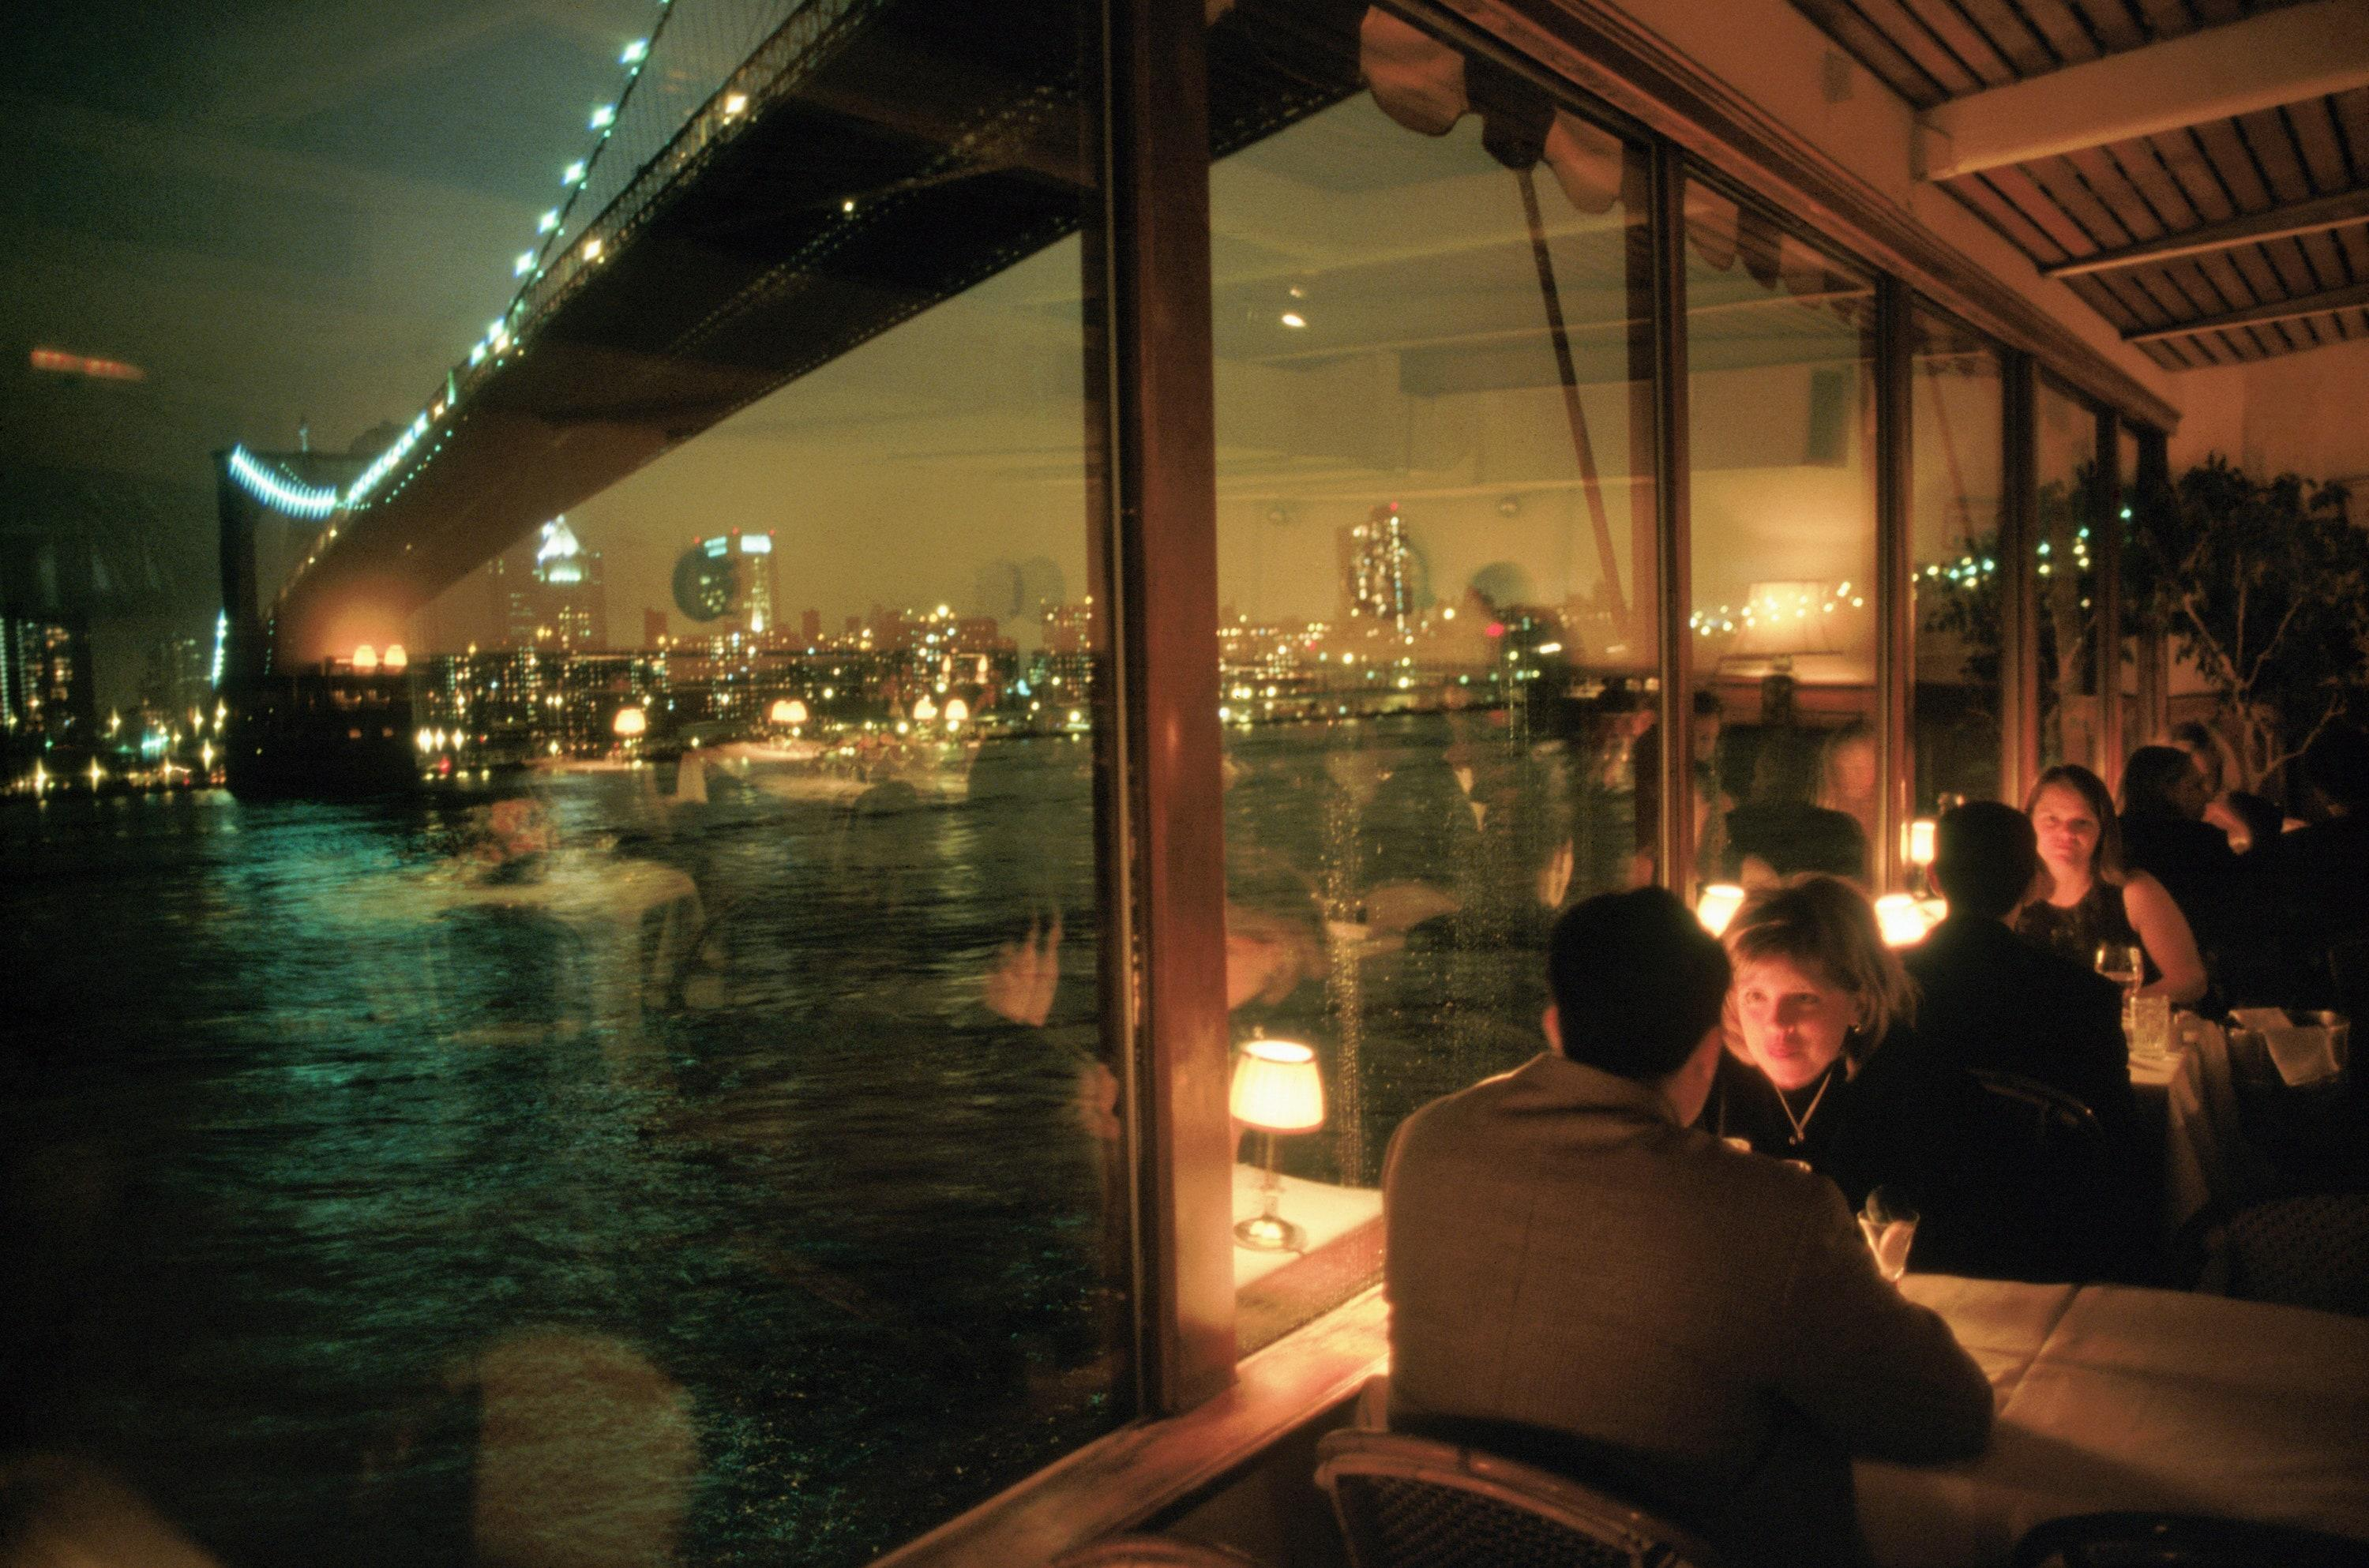 """Tucked away under the iconic Brooklyn Bridge, The River Café is a must-visit for anyone in search of a great meal paired with stunning views. Both day and night, the floor-to-ceiling windows allow diners to take in the length of the Brooklyn Bridge, the serenity of the East River, and the majesty of lower Manhattan. <em>1 Water St, Brooklyn, New York;</em> <a href=""""https://rivercafe.com/"""" rel=""""nofollow noopener"""" target=""""_blank"""" data-ylk=""""slk:rivercafe.com"""" class=""""link rapid-noclick-resp""""><em>rivercafe.com</em></a>"""